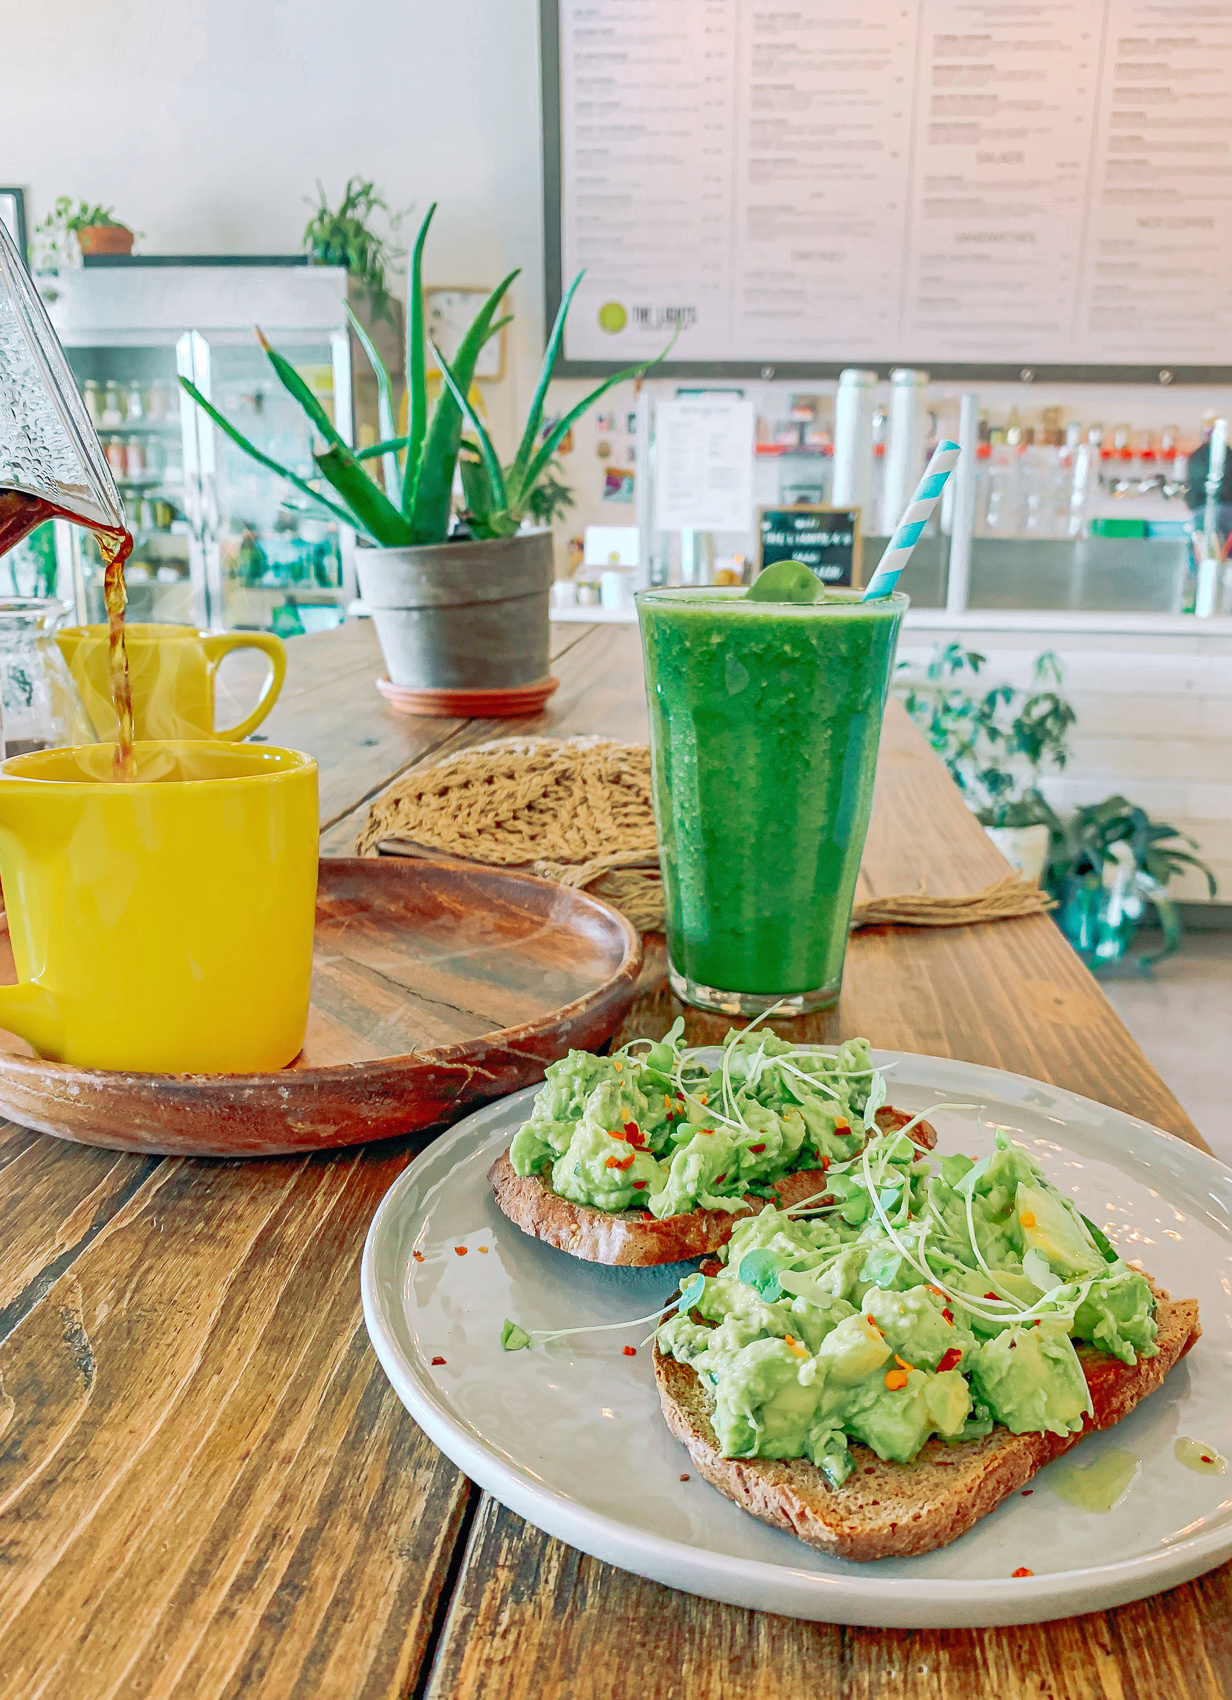 lights juicery and cafe Charlotte nc, clt, Ballantyne, coffee, green juice, plant based, vegan, avocado, coffee shop